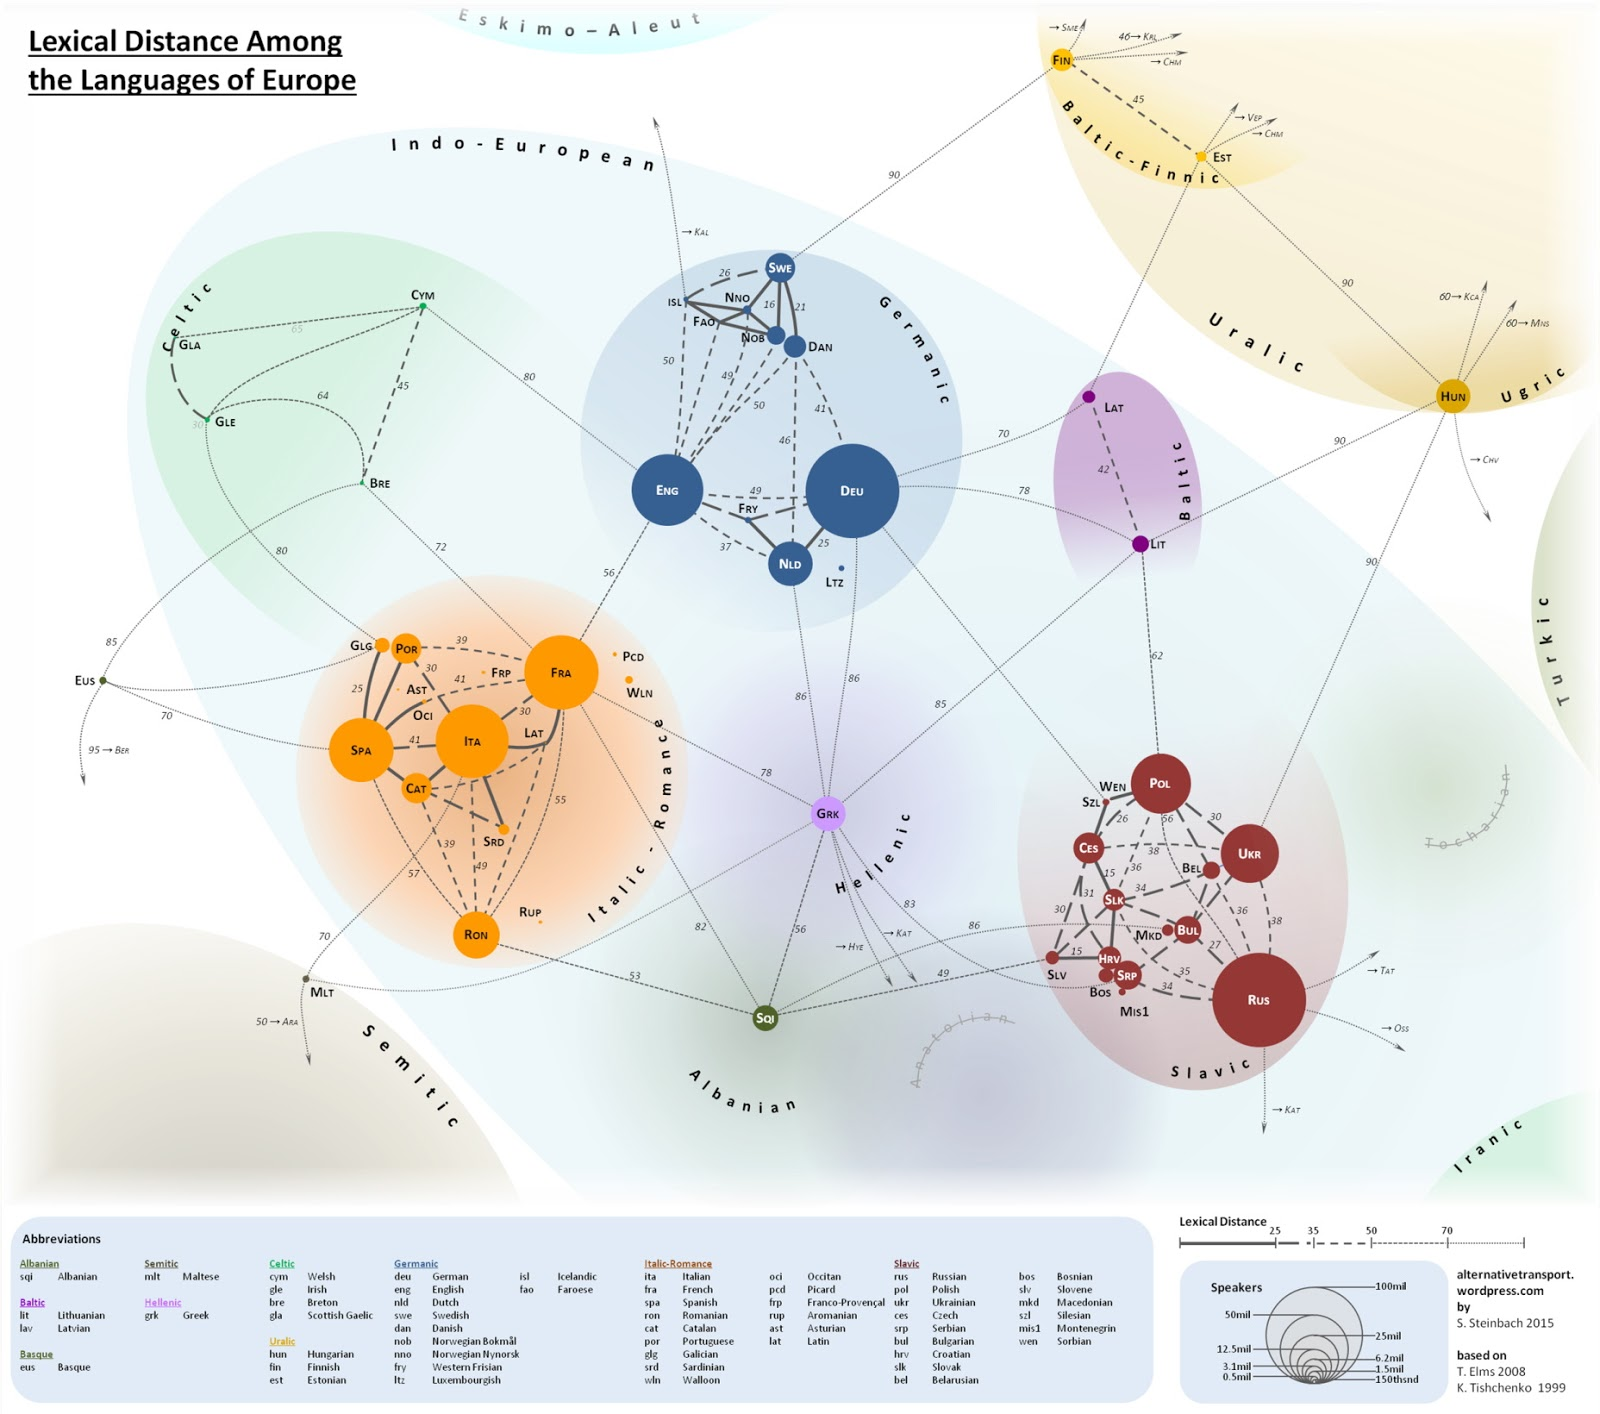 Lexical distance among the languages of Europe